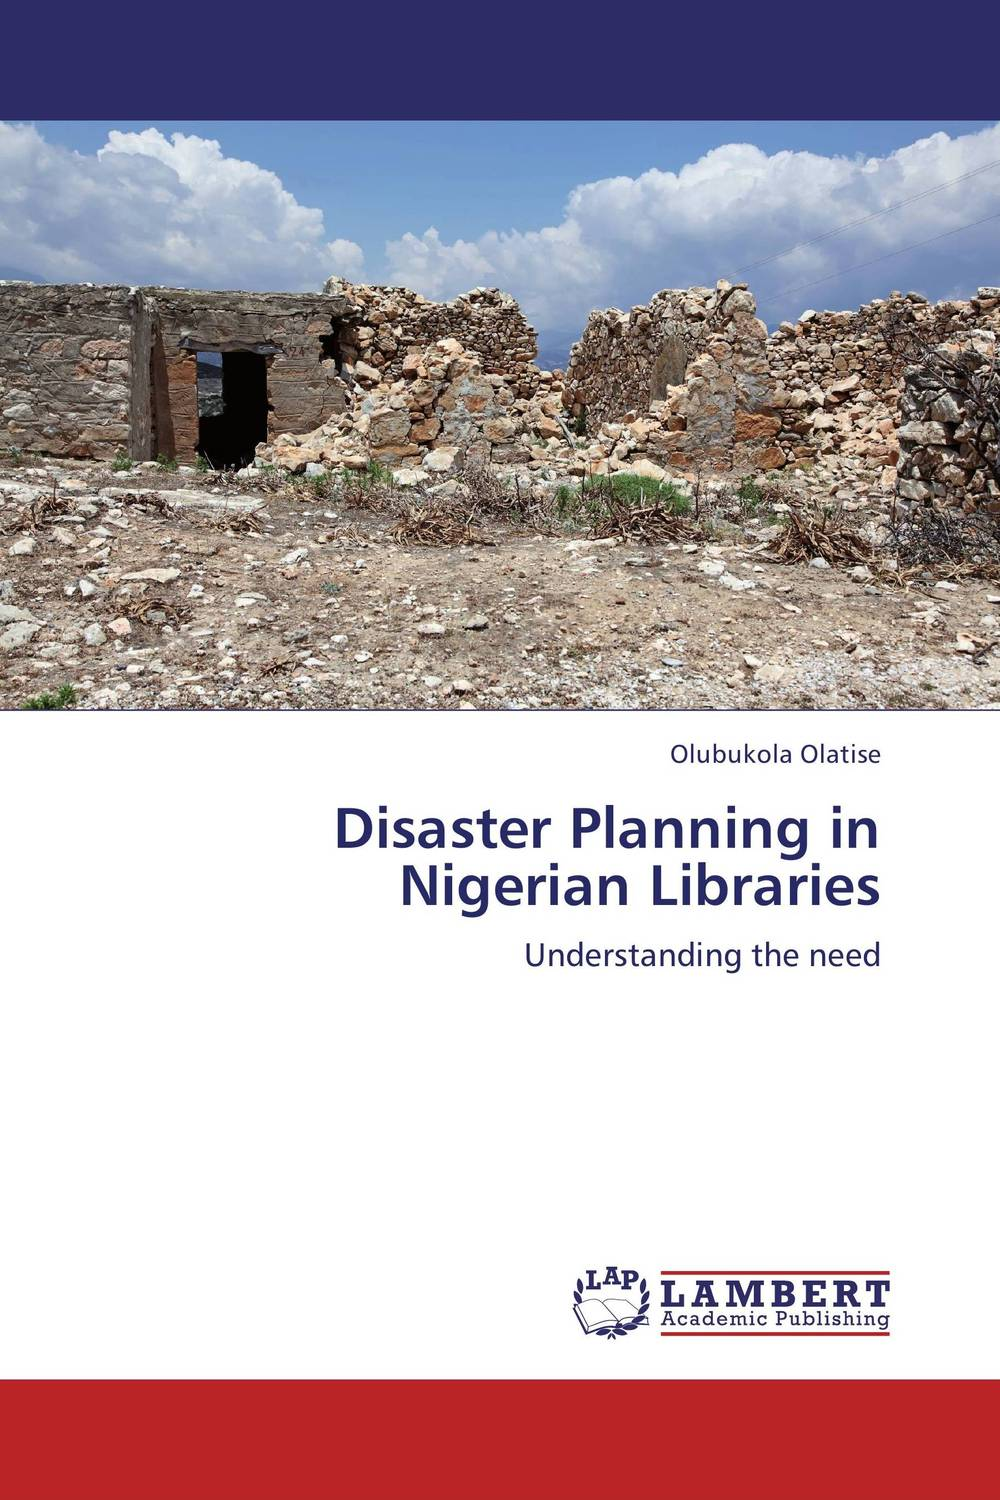 Disaster Planning in Nigerian Libraries ballis stacey recipe for disaster